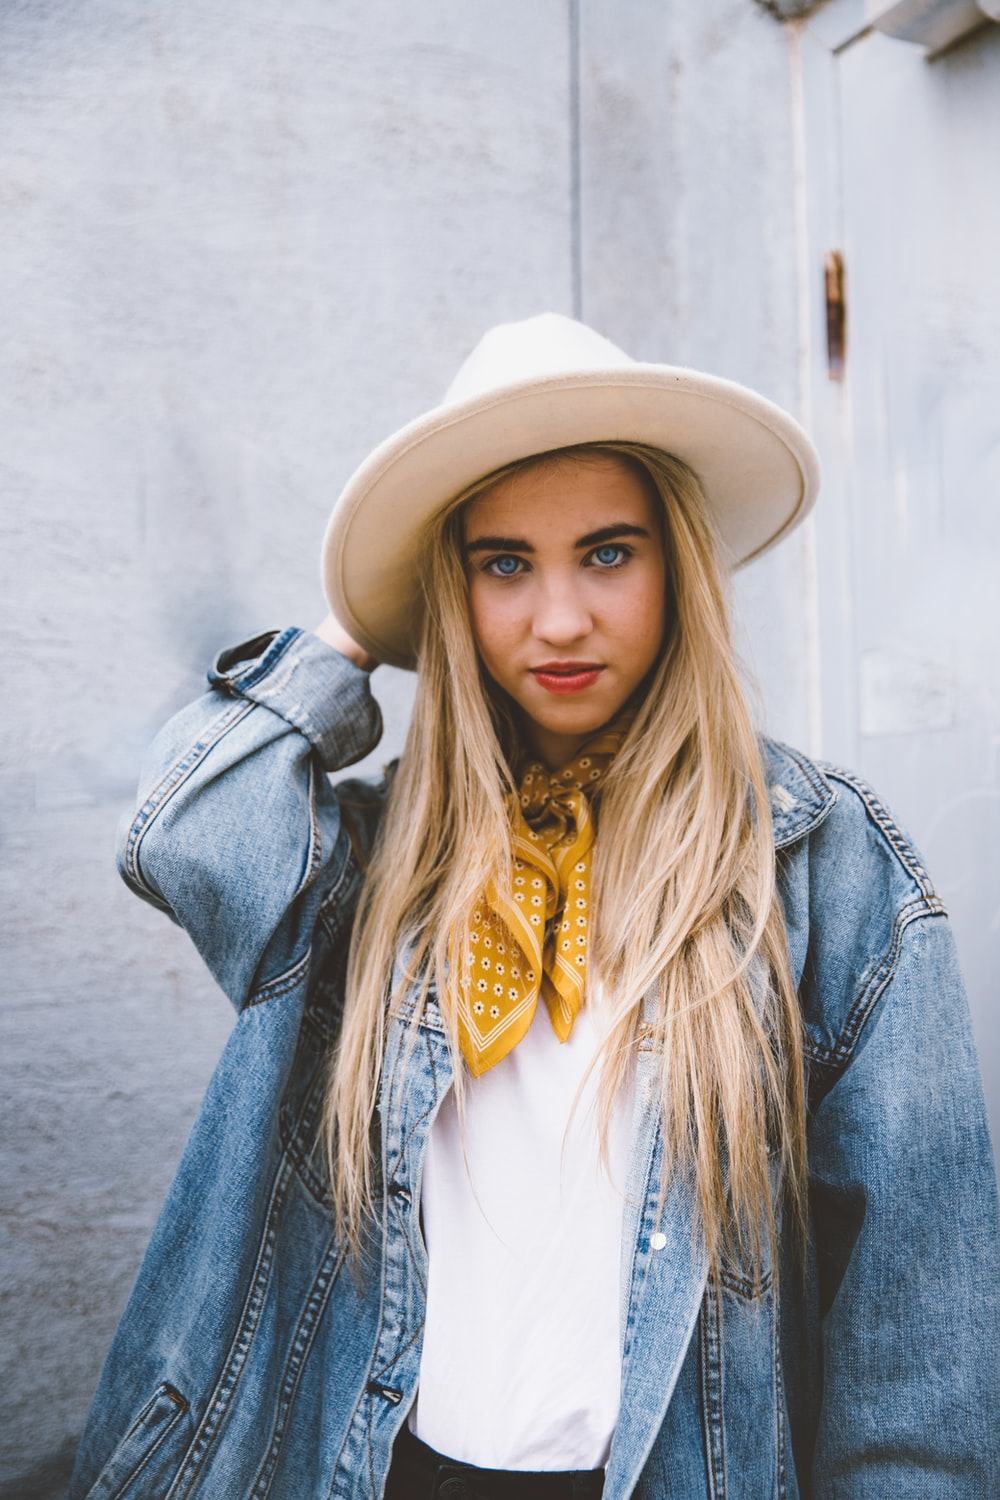 woman wearing blue denim jacket and white hat